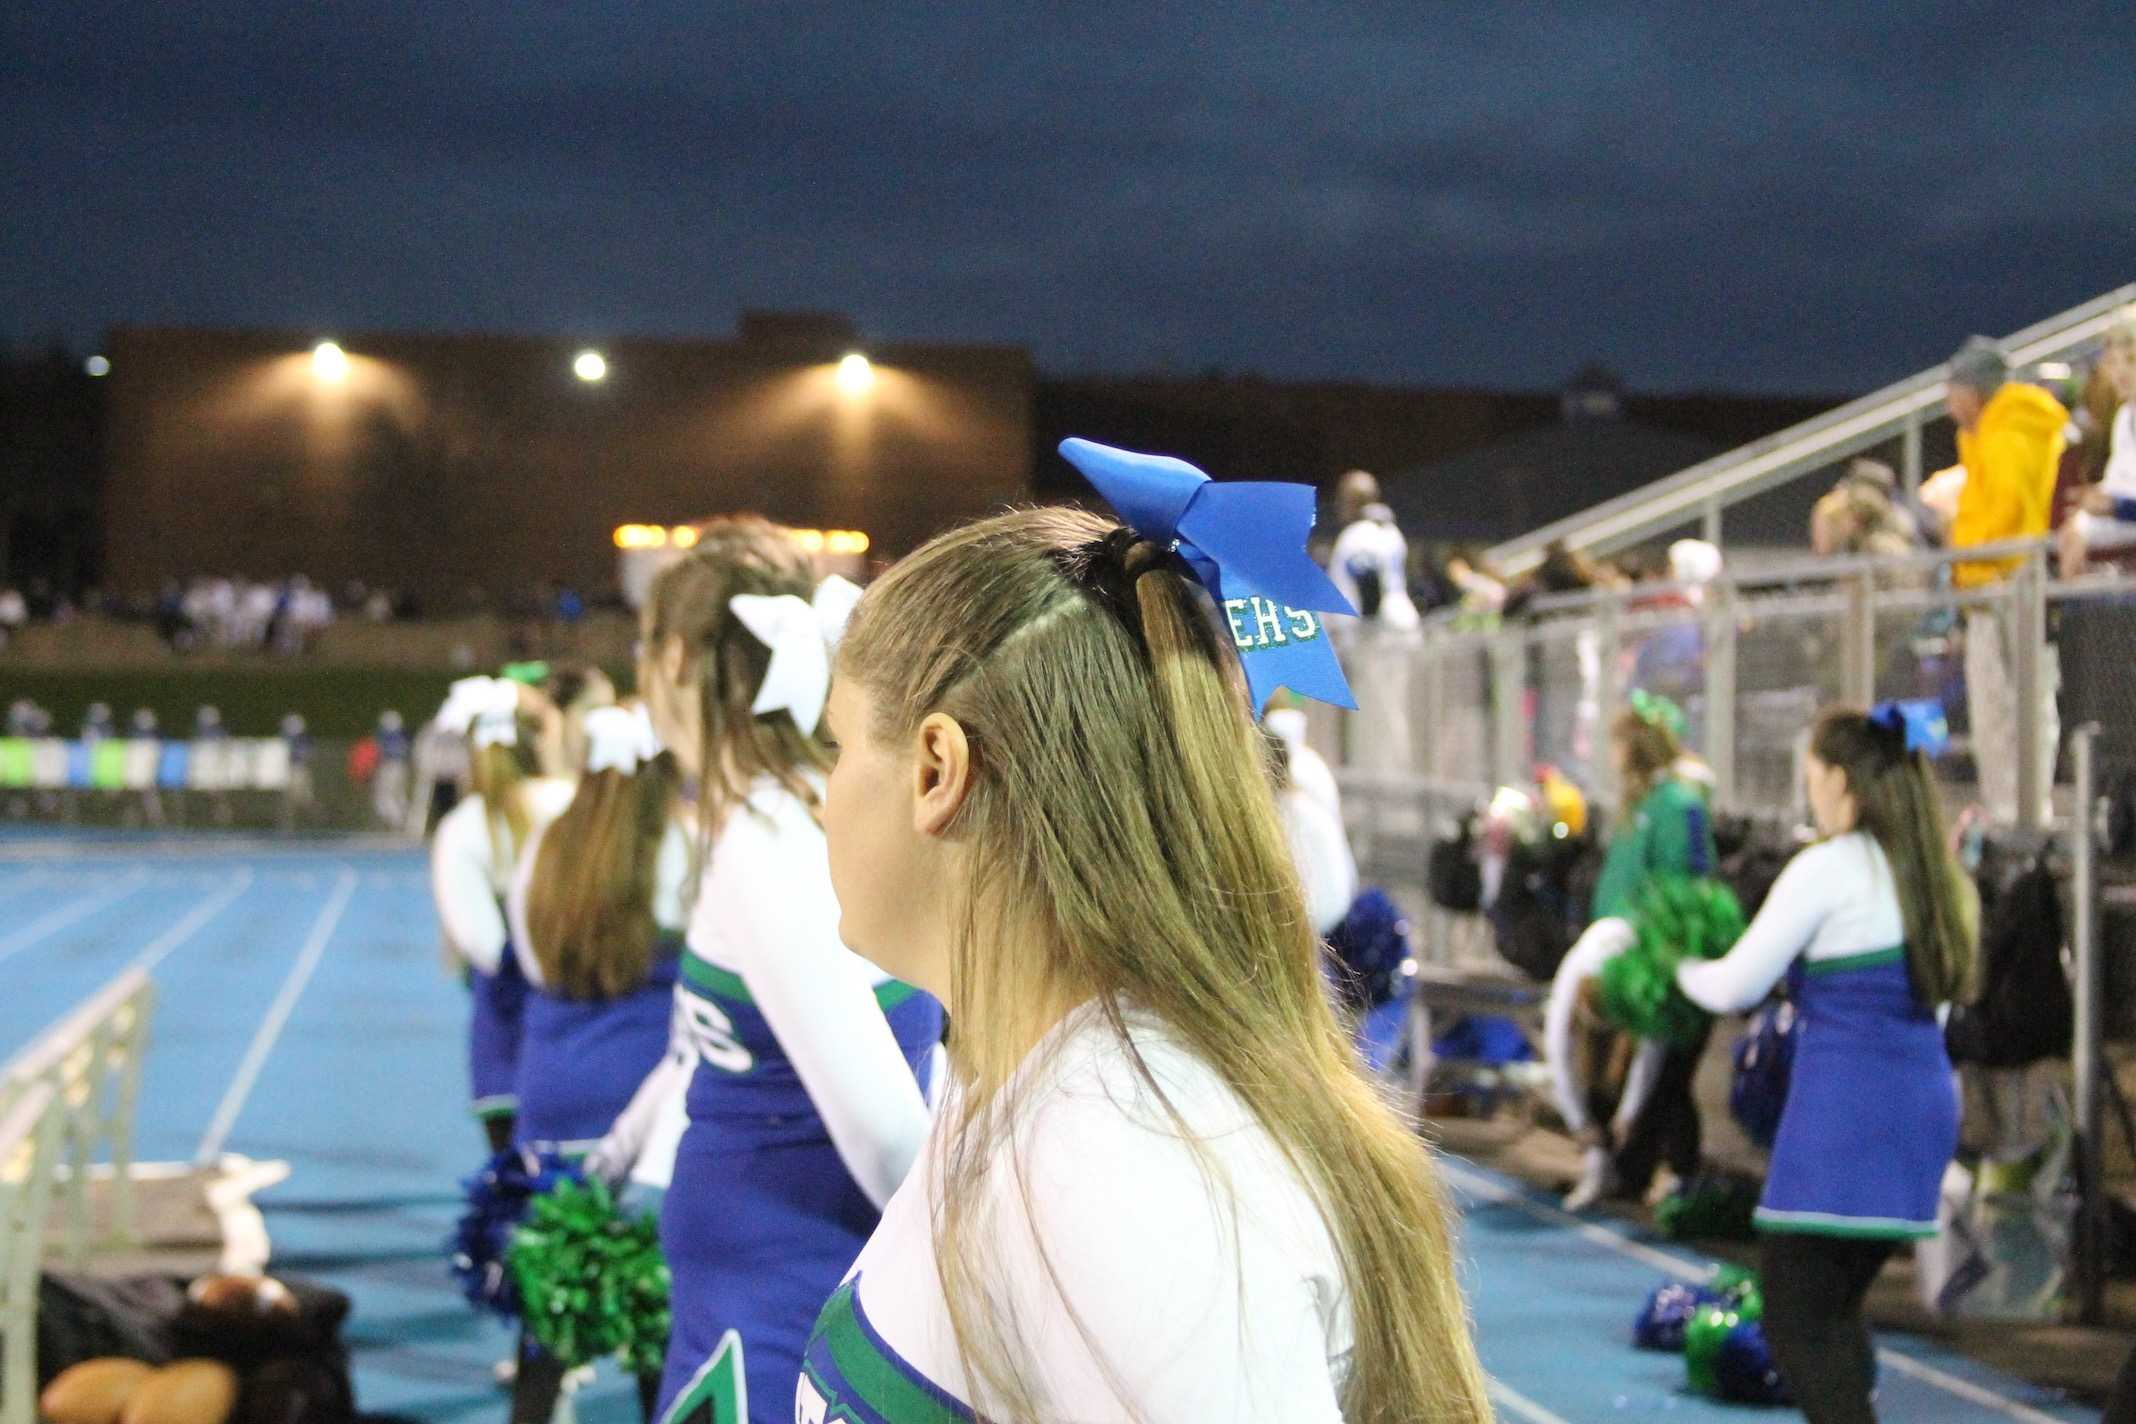 Cheerleaders attentively watch the game